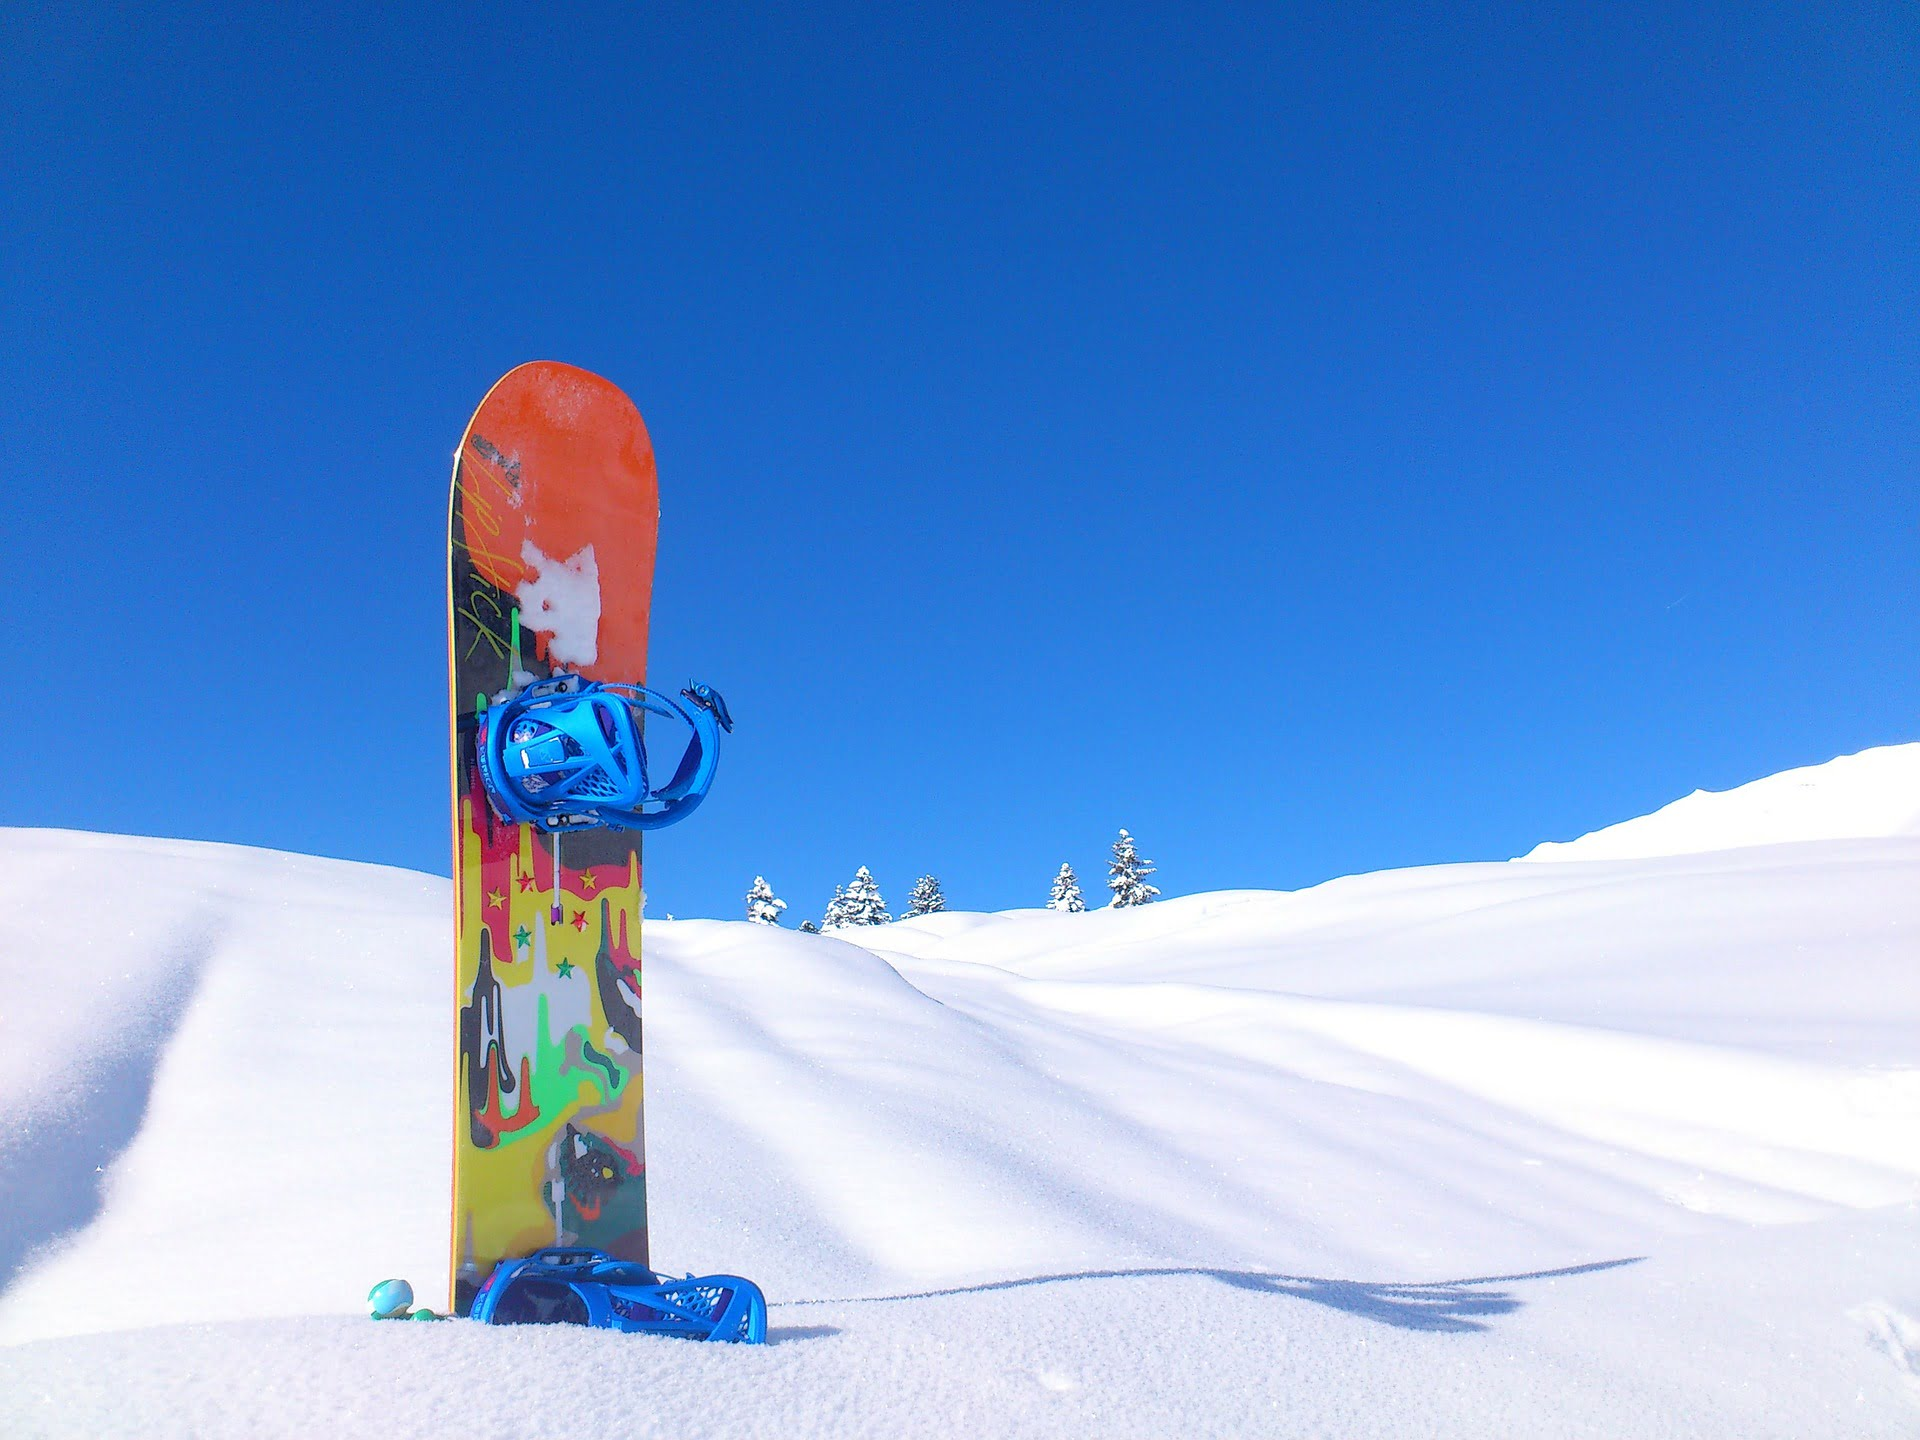 snowboarding packing list